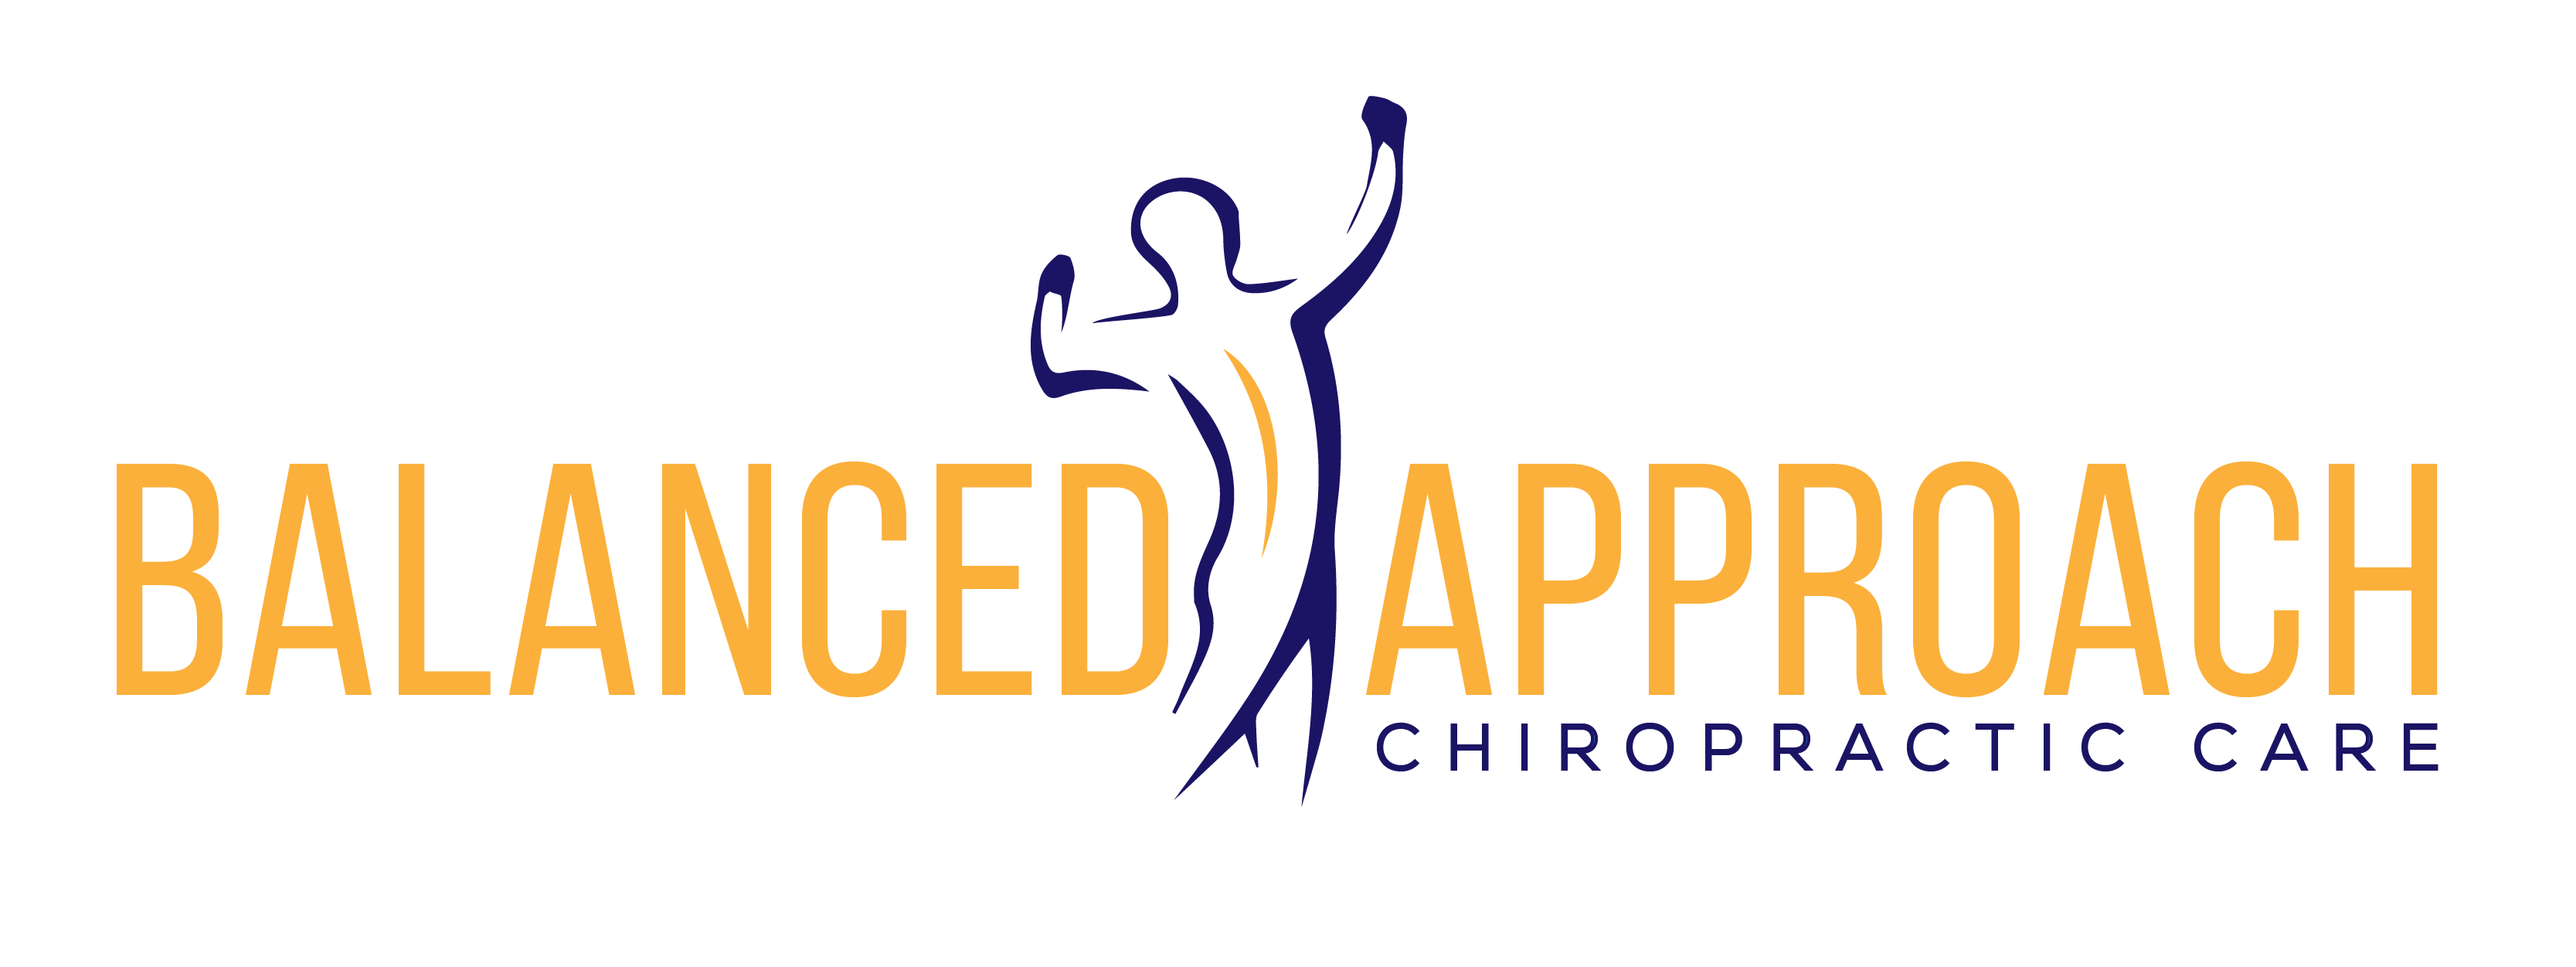 Balanced Approach Chiropractic Care